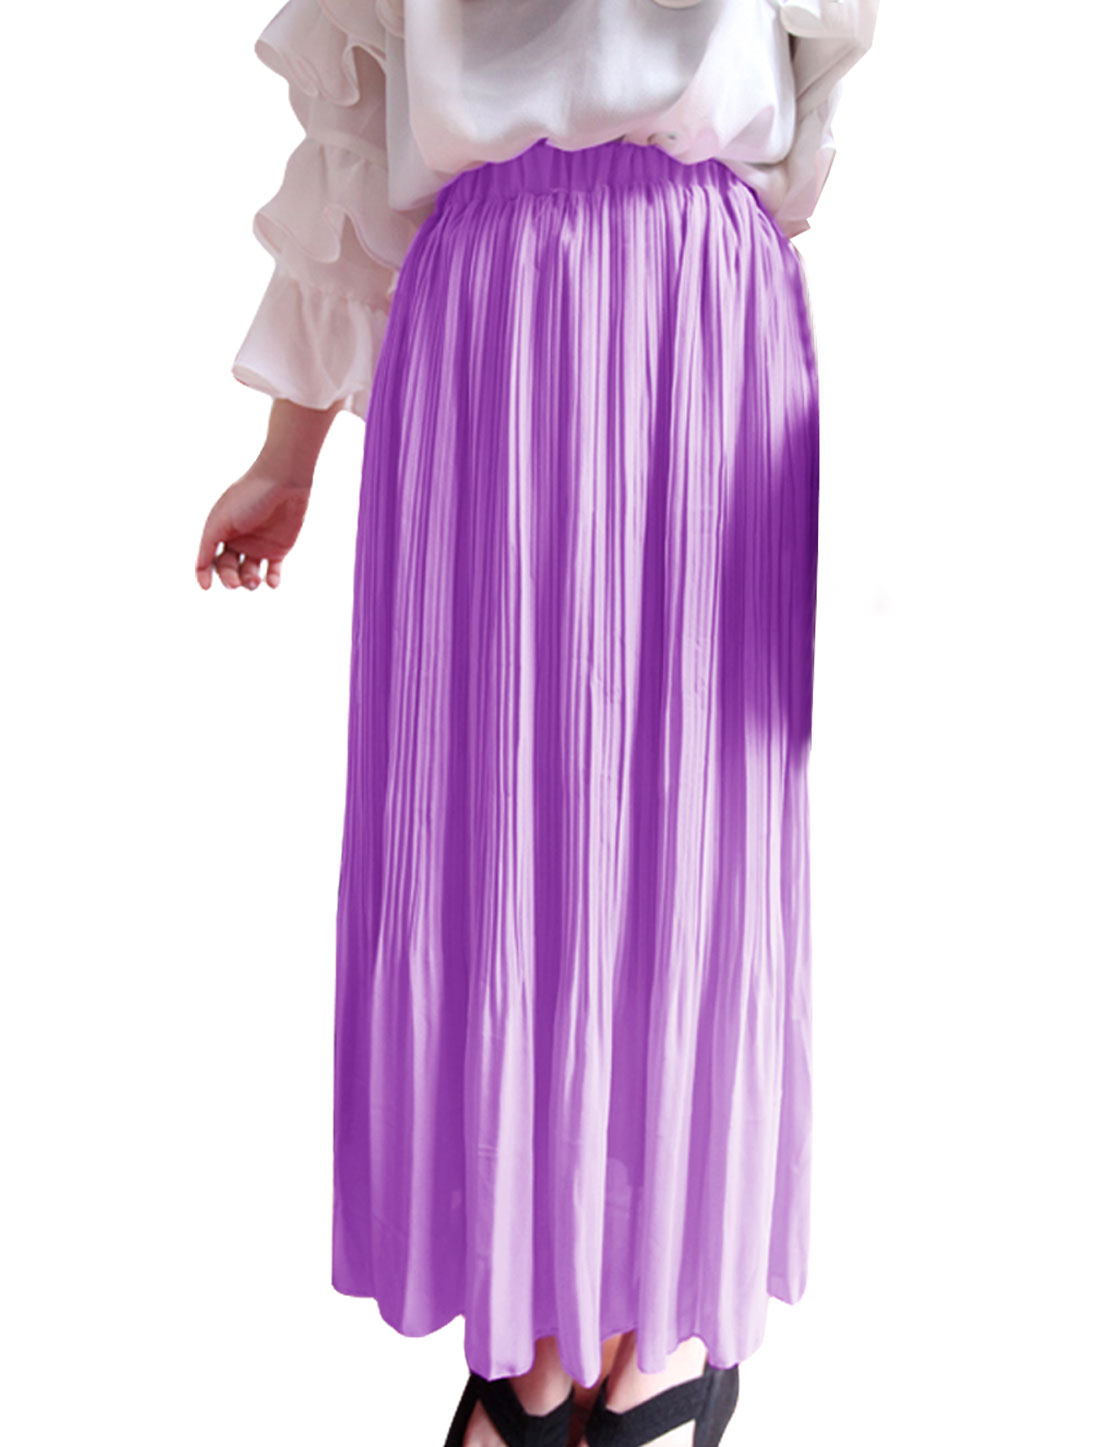 Ladies Elastic Waist Lining Mid Calf Casual Skirt Lilac XS